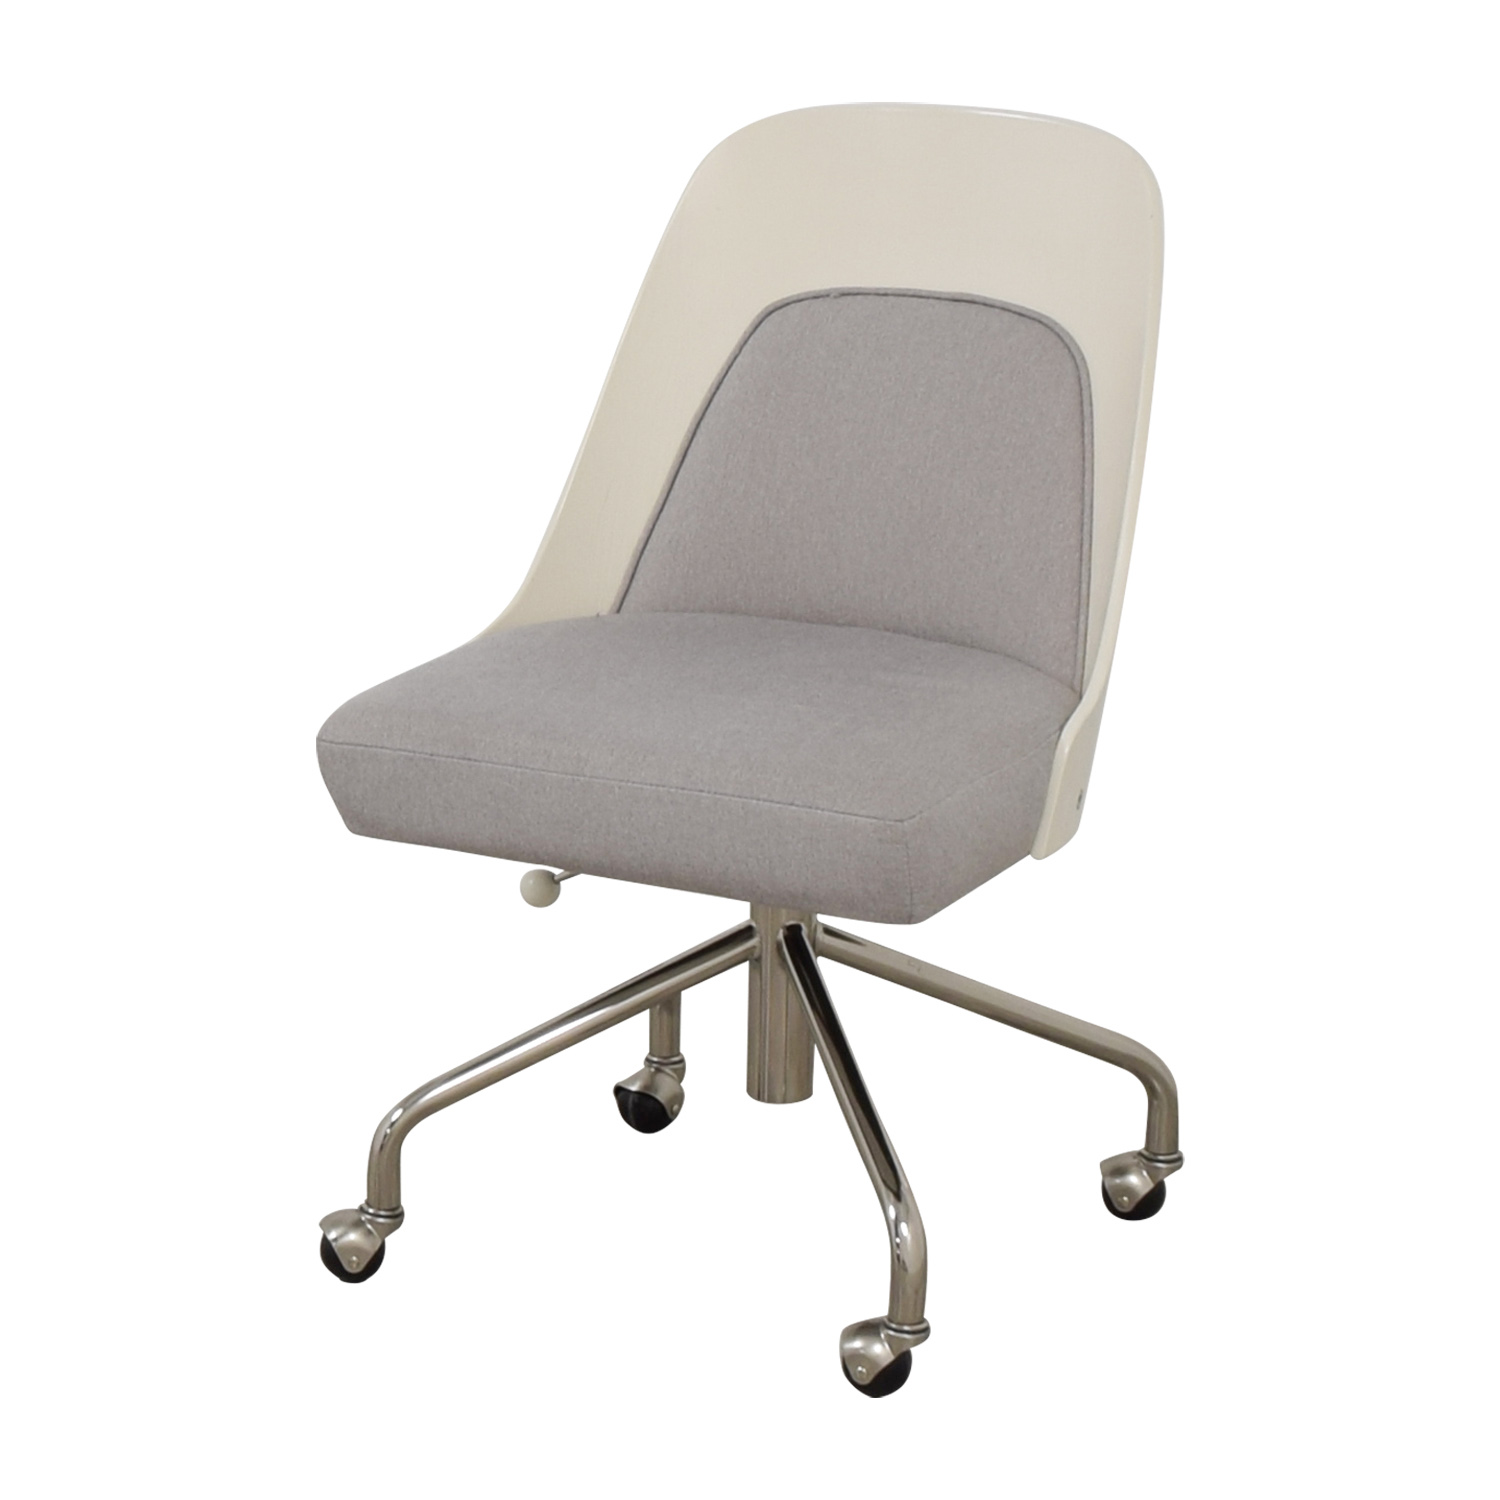 stunning west elm office chair | 77% OFF - West Elm West Elm Bentwood Office Chair White ...